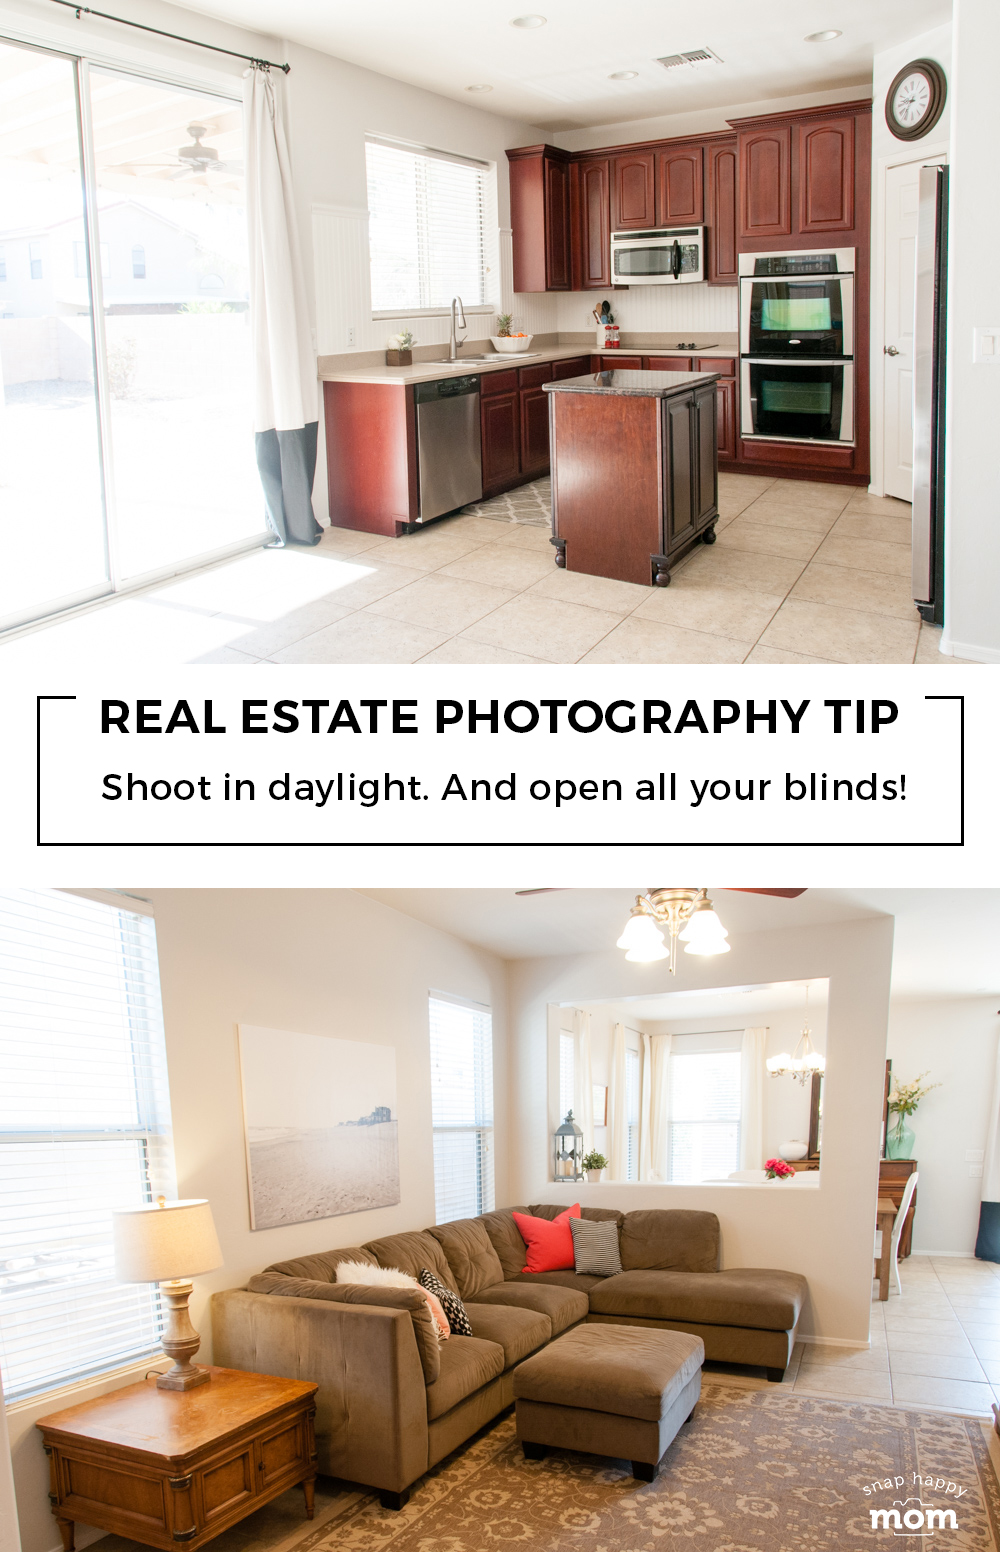 Real Estate Photography: Shoot in the daylight.